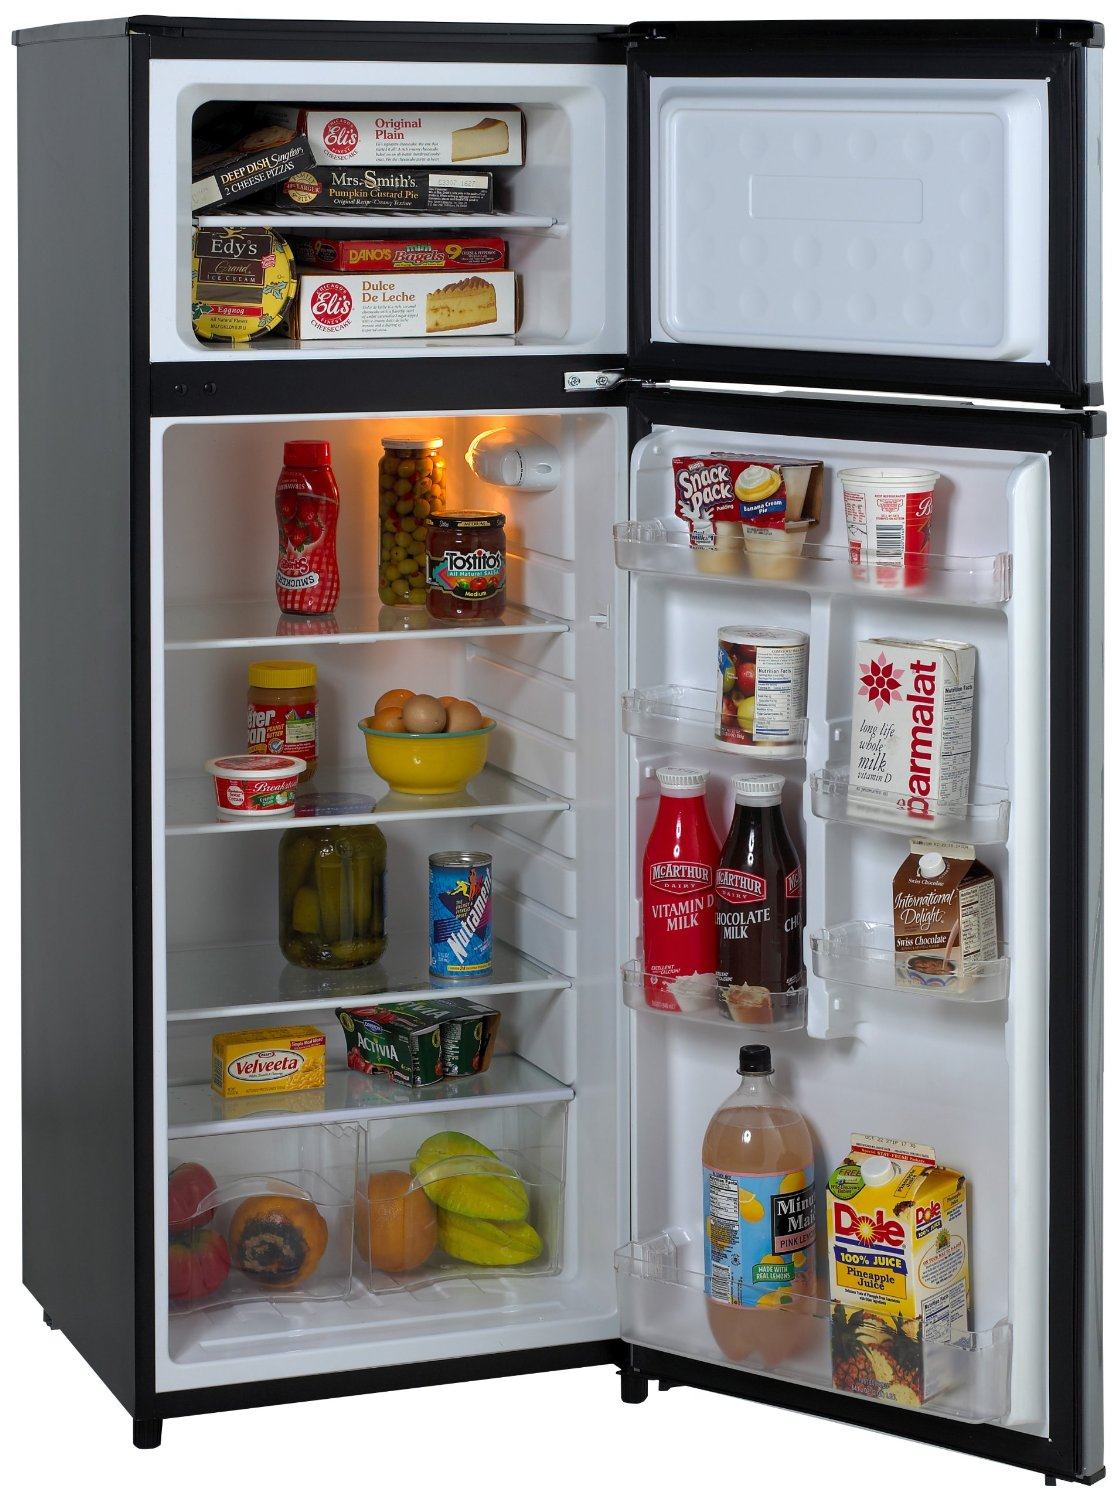 Apartment Size Refrigerator - Home is Best Place to Return